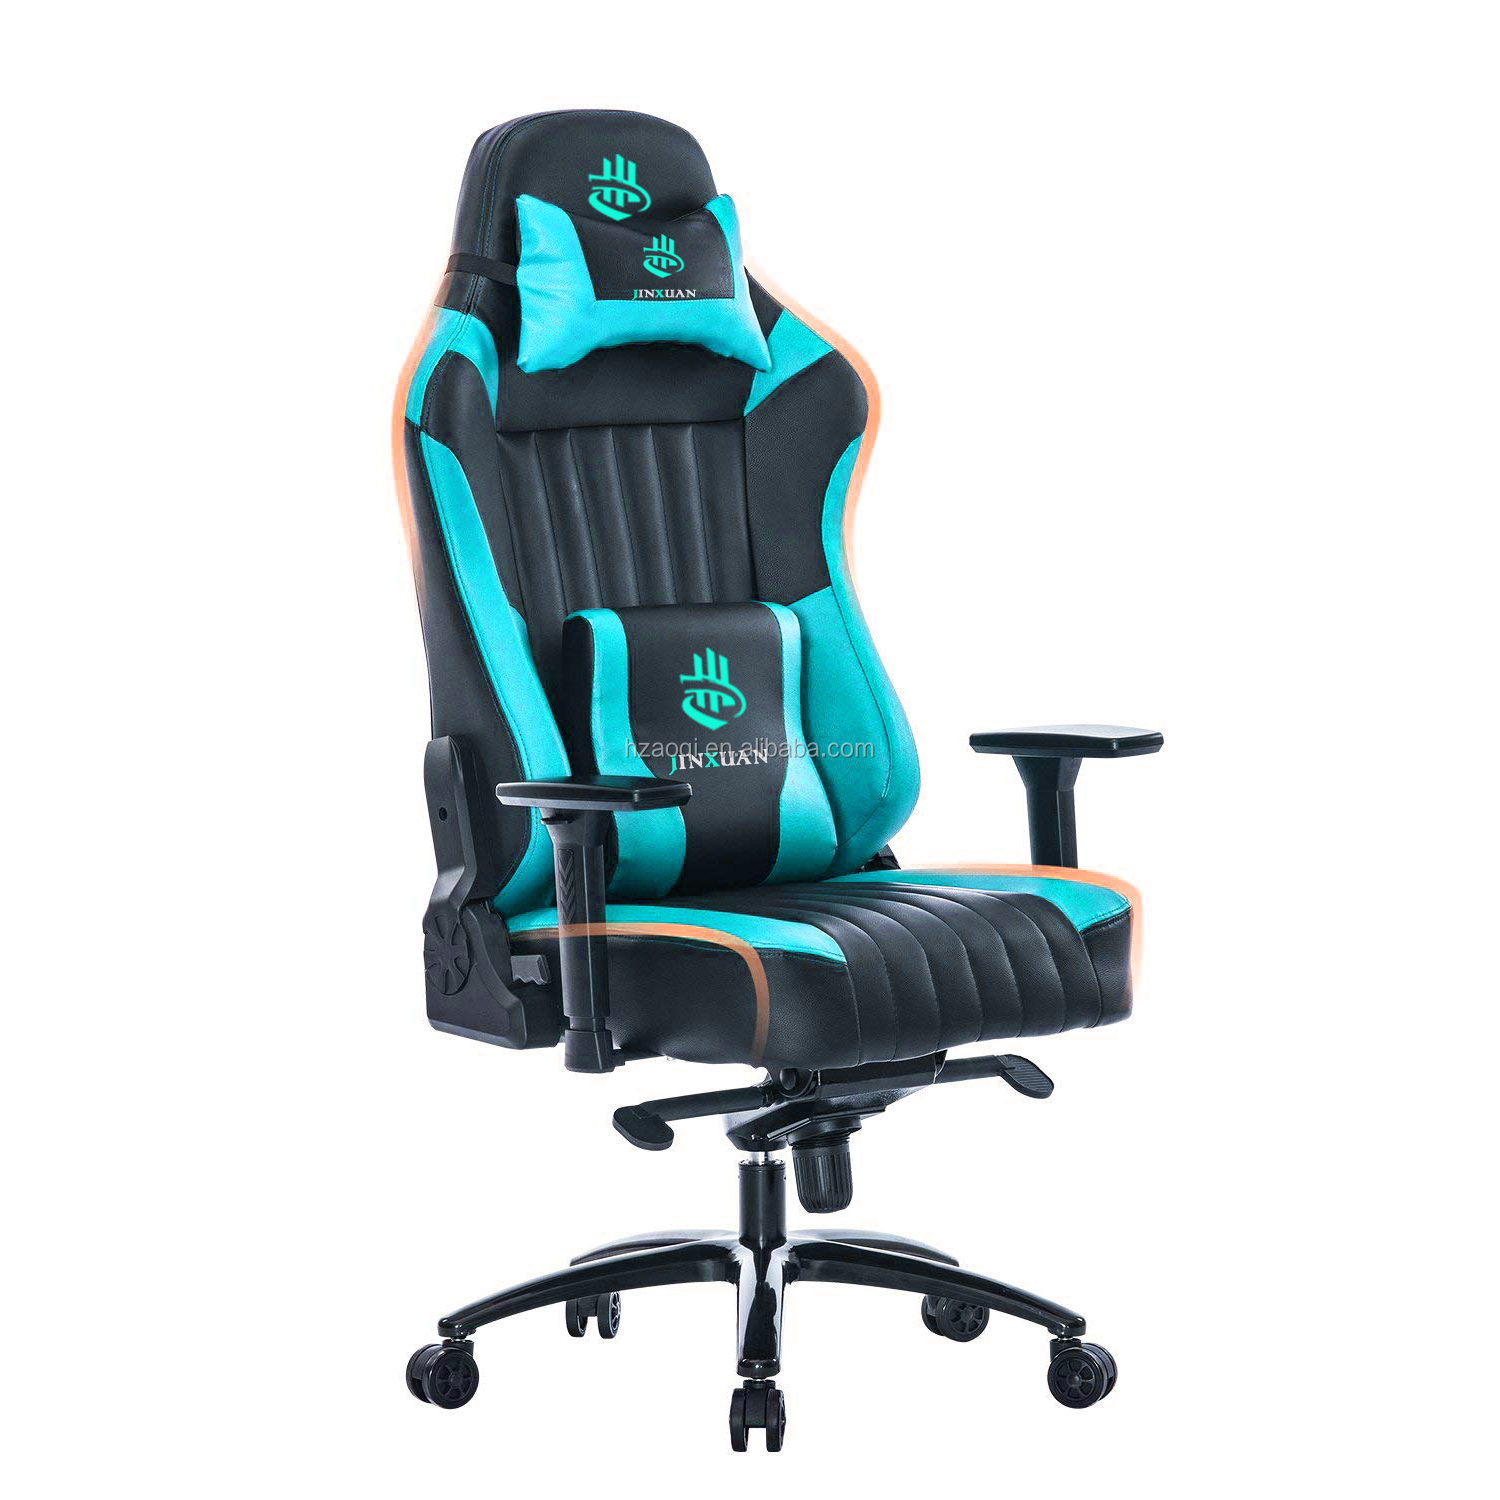 Anji Modern Popular In Korean And Japan Gaming Cheap Sedia Gamer Chair Best Gaming Computer Office Massage Chair Silla Gamer Buy Rocking Blue Sedie Da Gaming Chair Cheap Sedia Gamer Chair Popular In